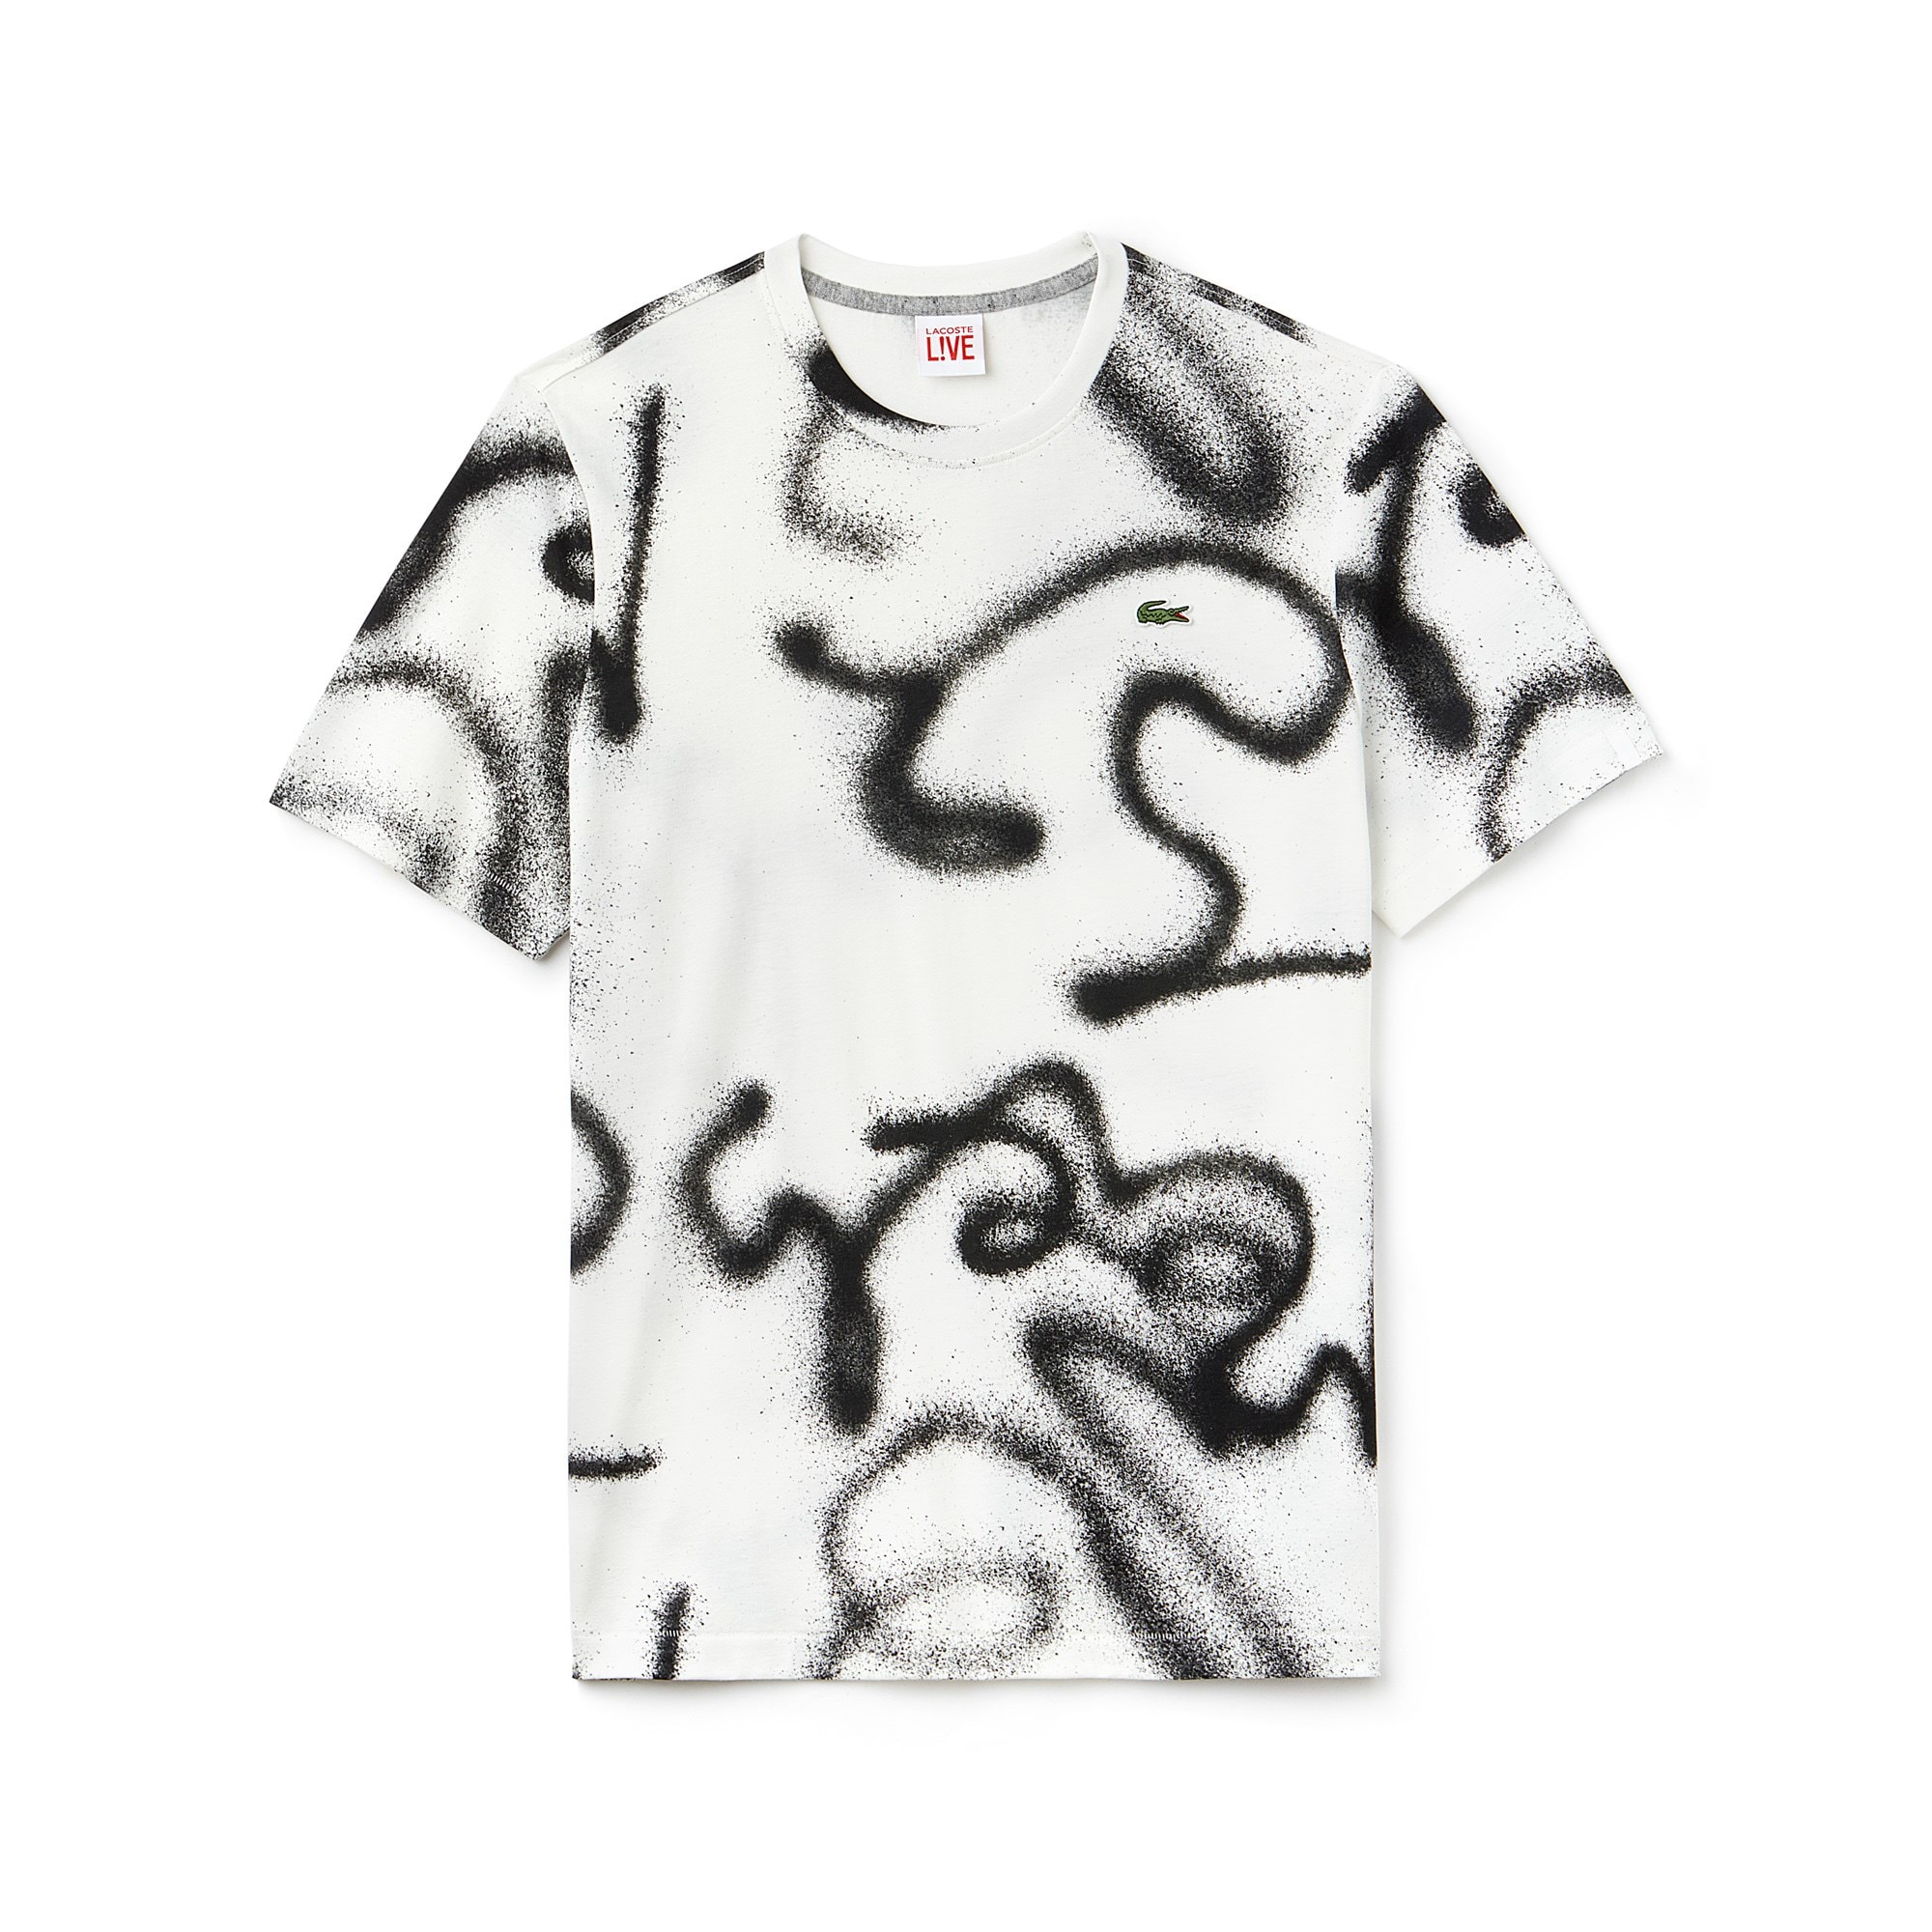 Men's Lacoste LIVE Crew Neck Graffiti Print Jersey T-shirt